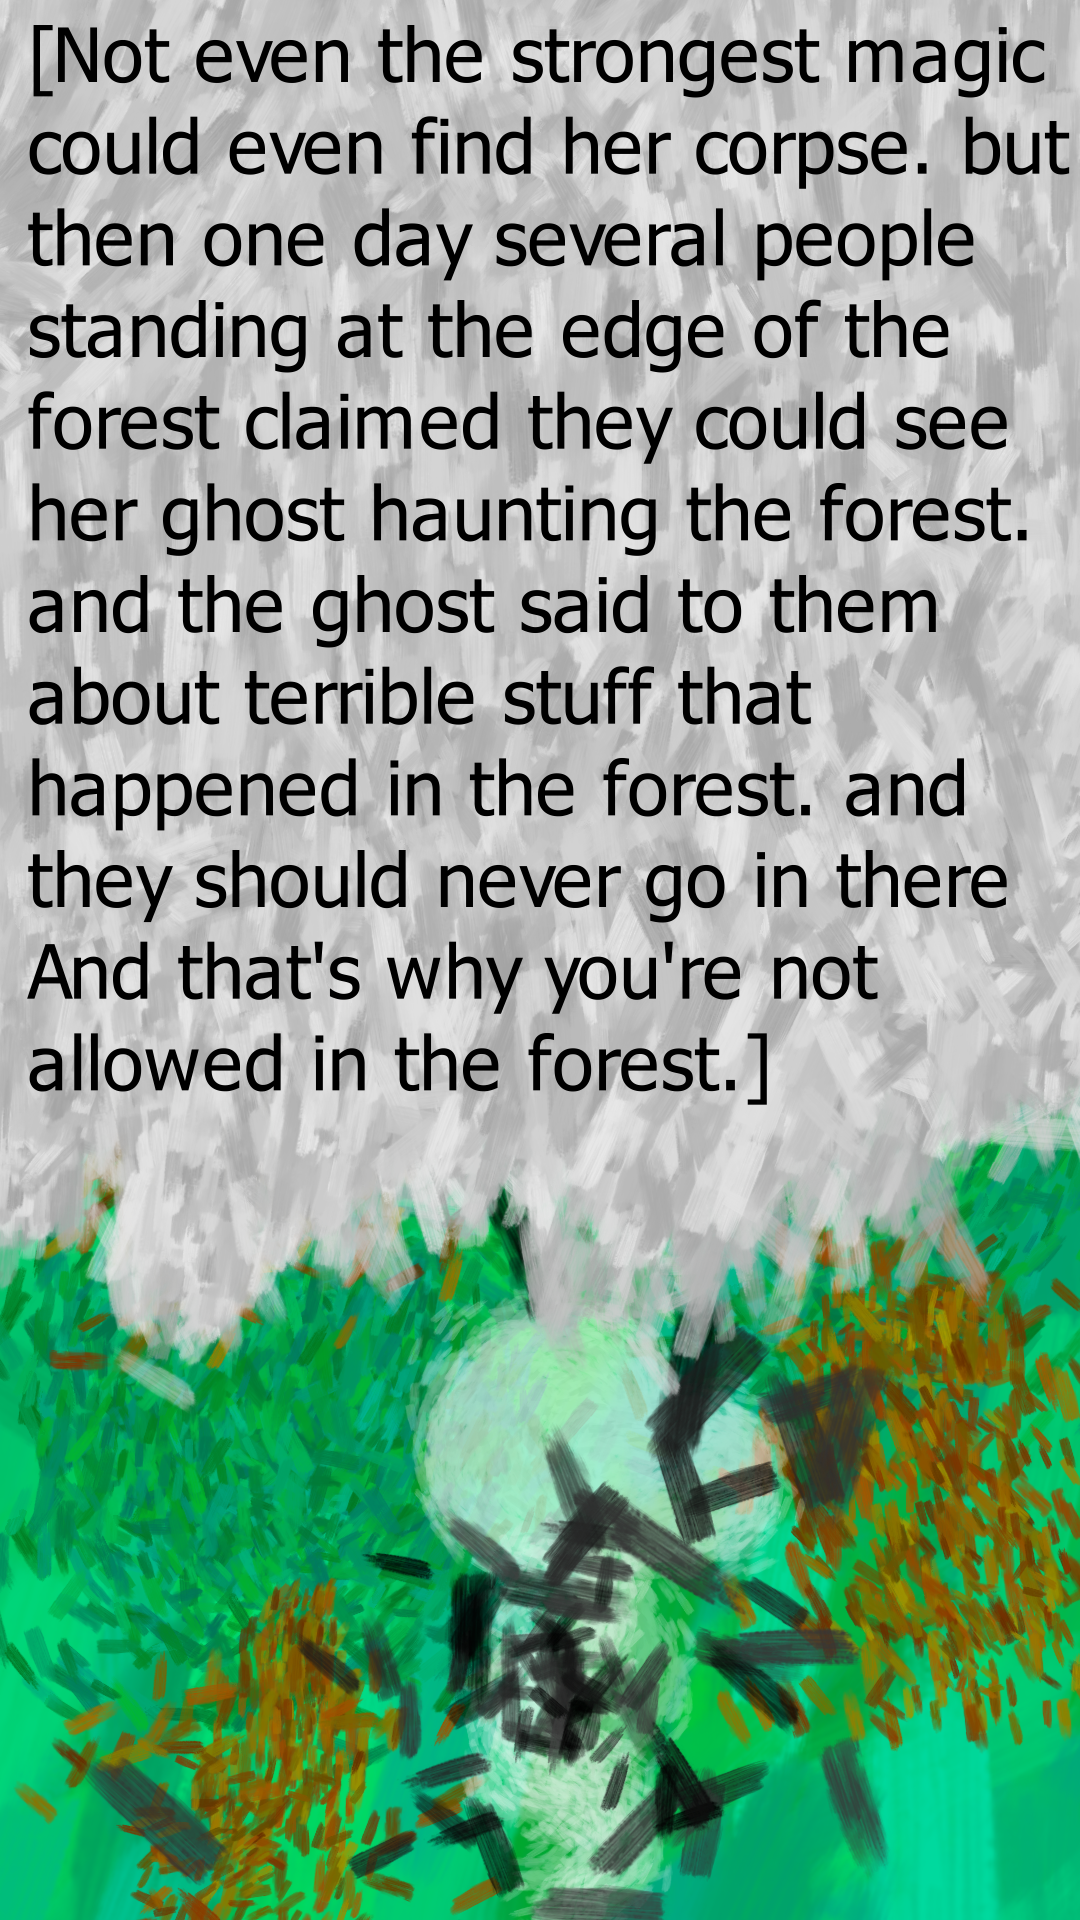 page 92 thats why your not allowed in the forest